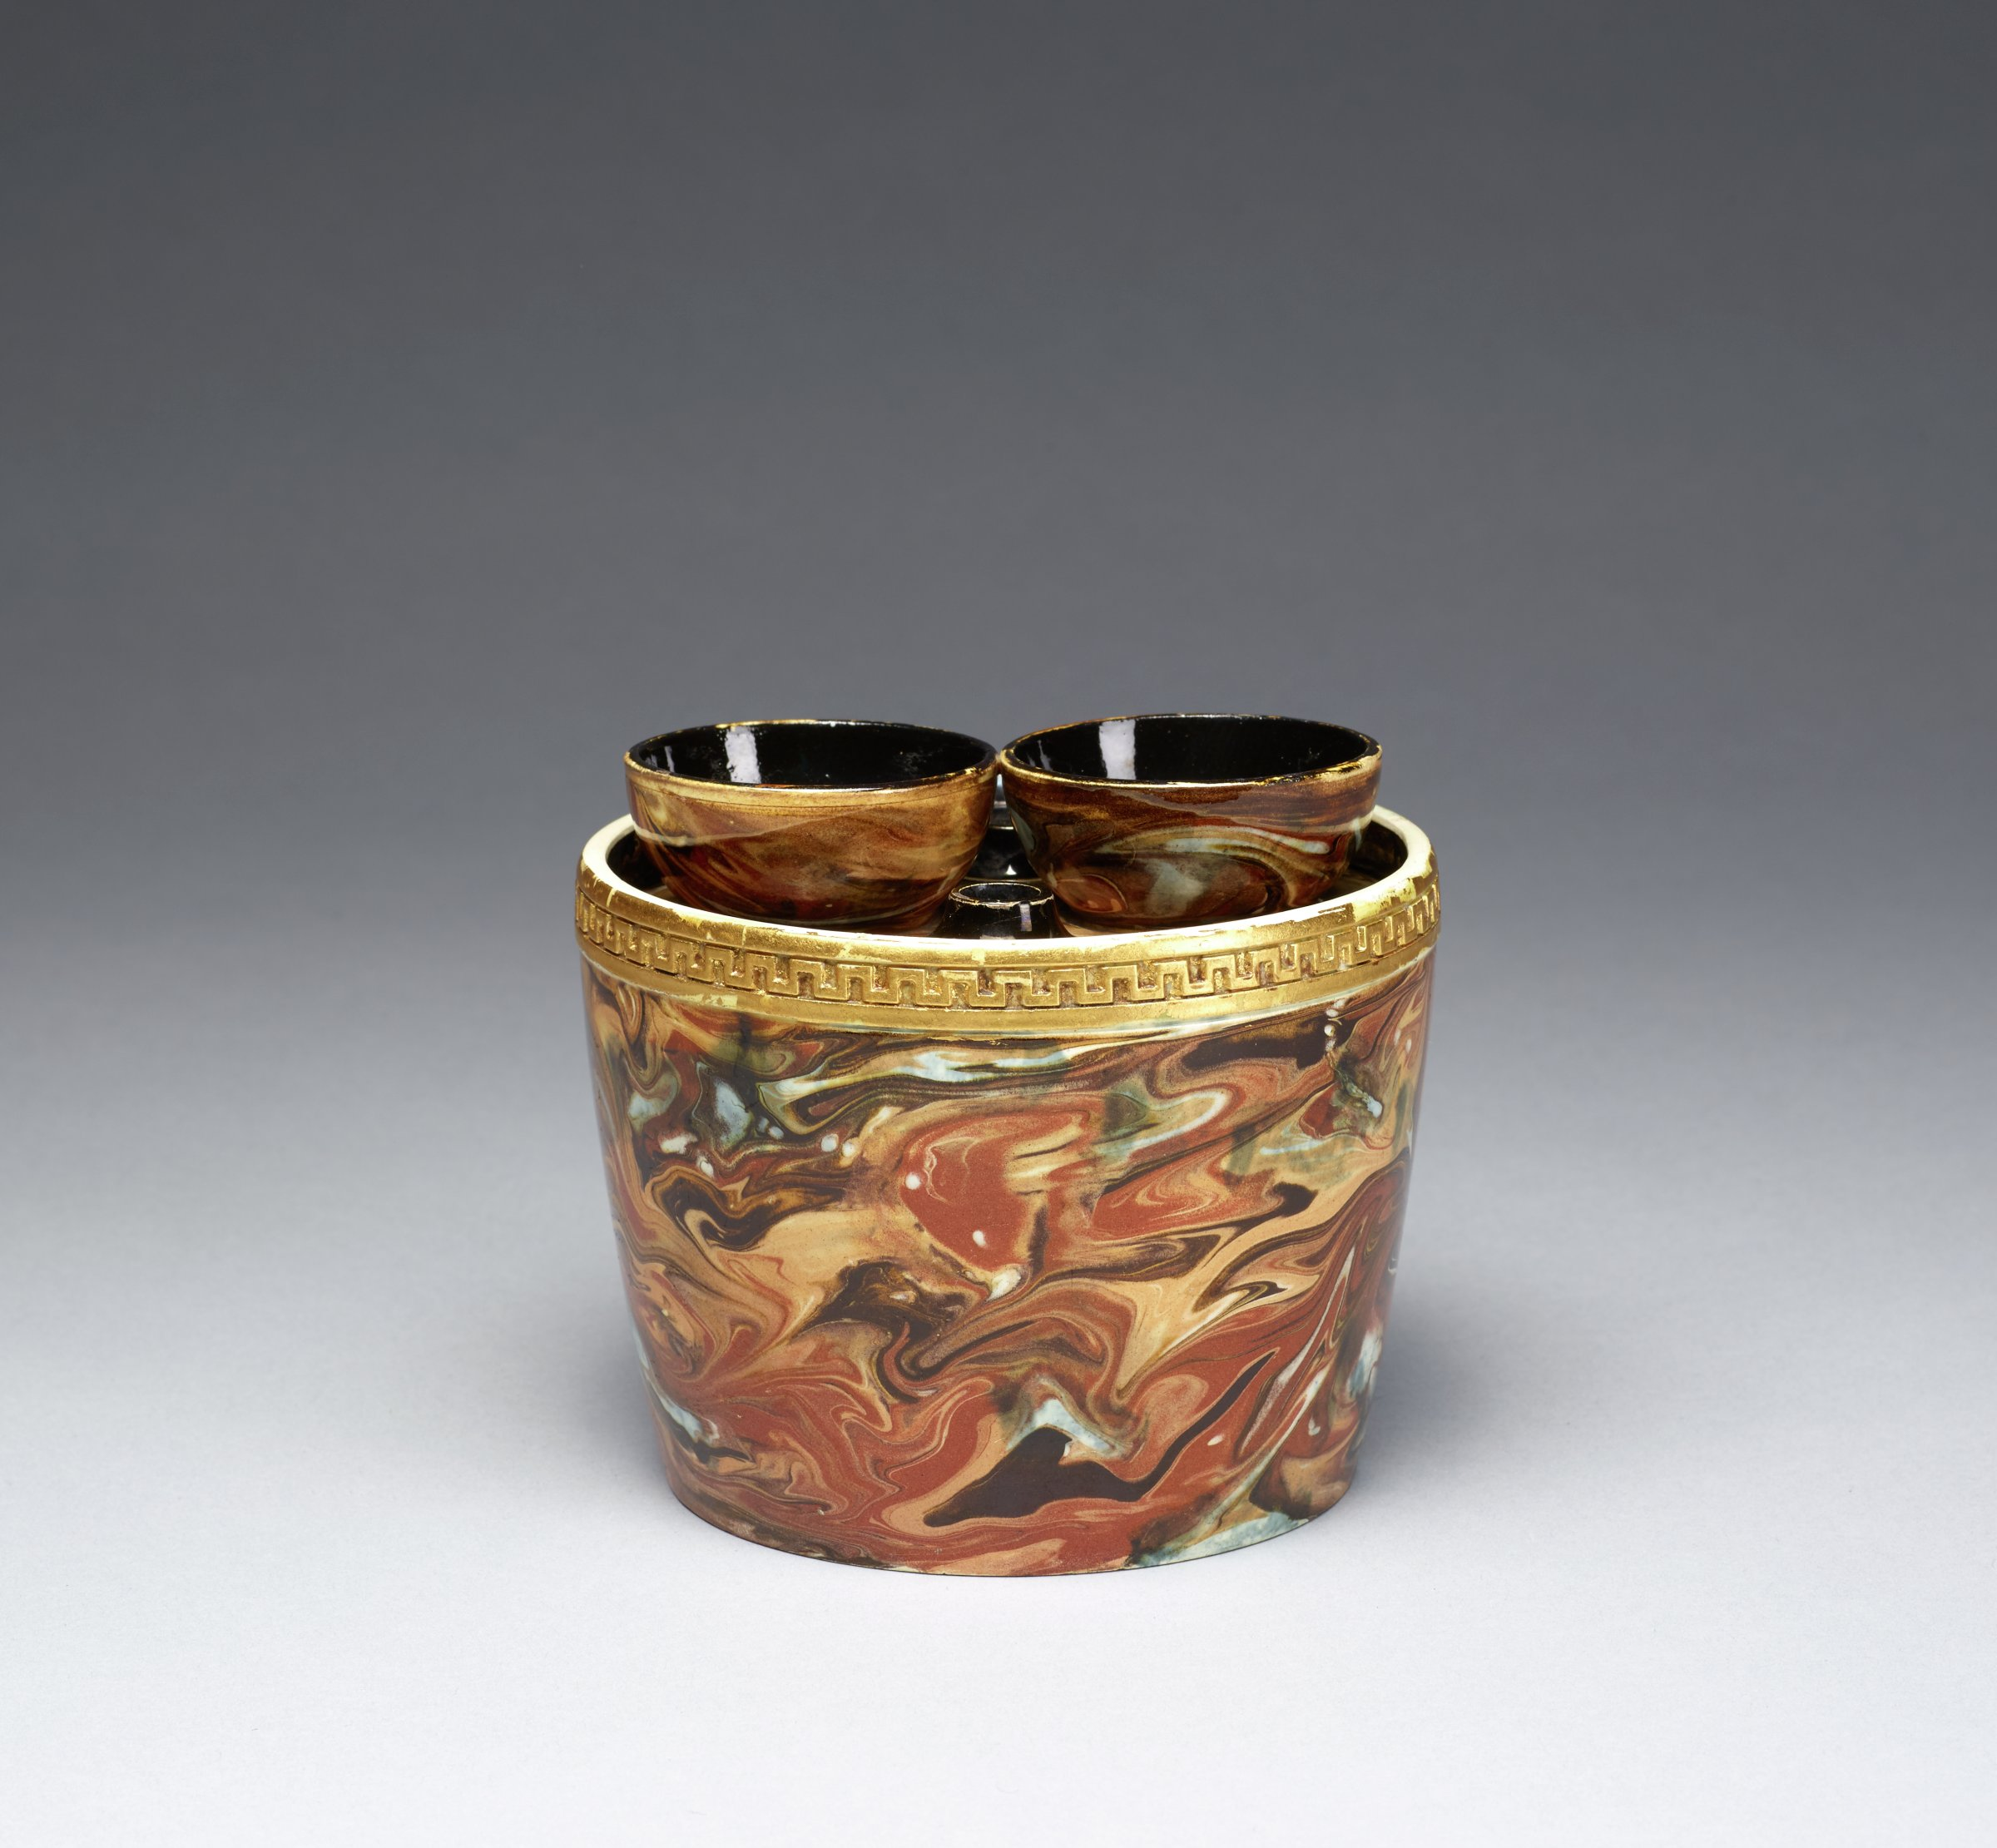 Small bulb pot of white stoneware covered with an opaque variegated agate glaze in shades of brown, beige and yellow, below the lip a band of gilded fret work, the fitted cover with two spouts to hold bulbs and two smaller air holes, both the interior of the pot and underside of the cover are glazed black.